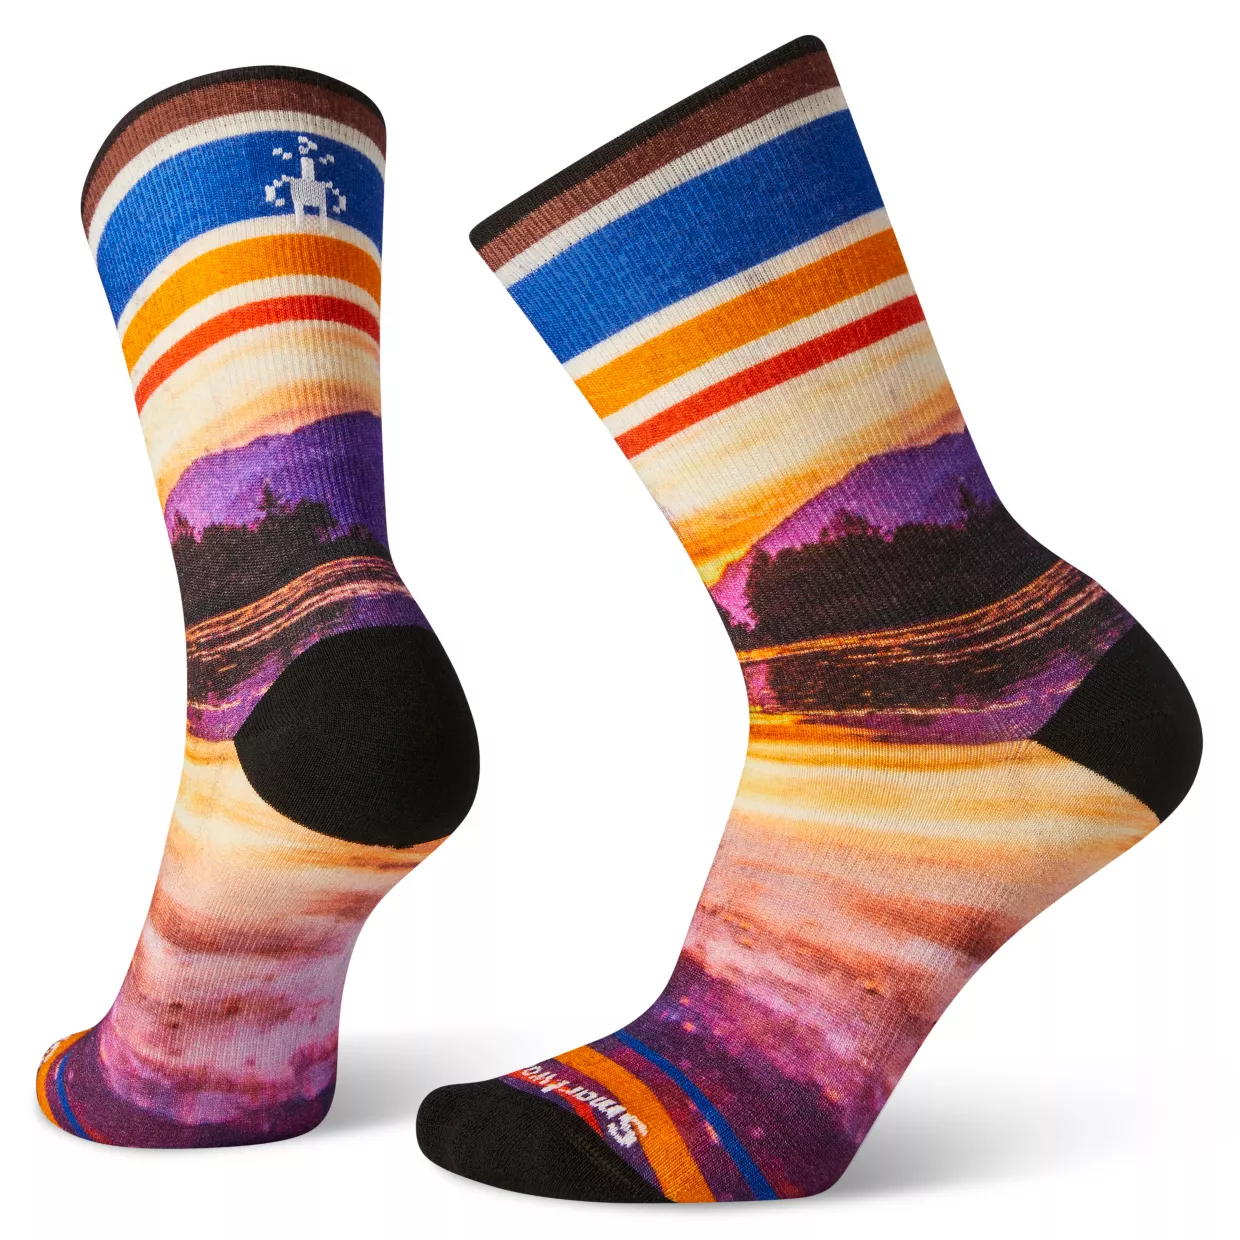 SMARTWOOL Smartwool Women's Curated Reflection Mountain Crew Socks